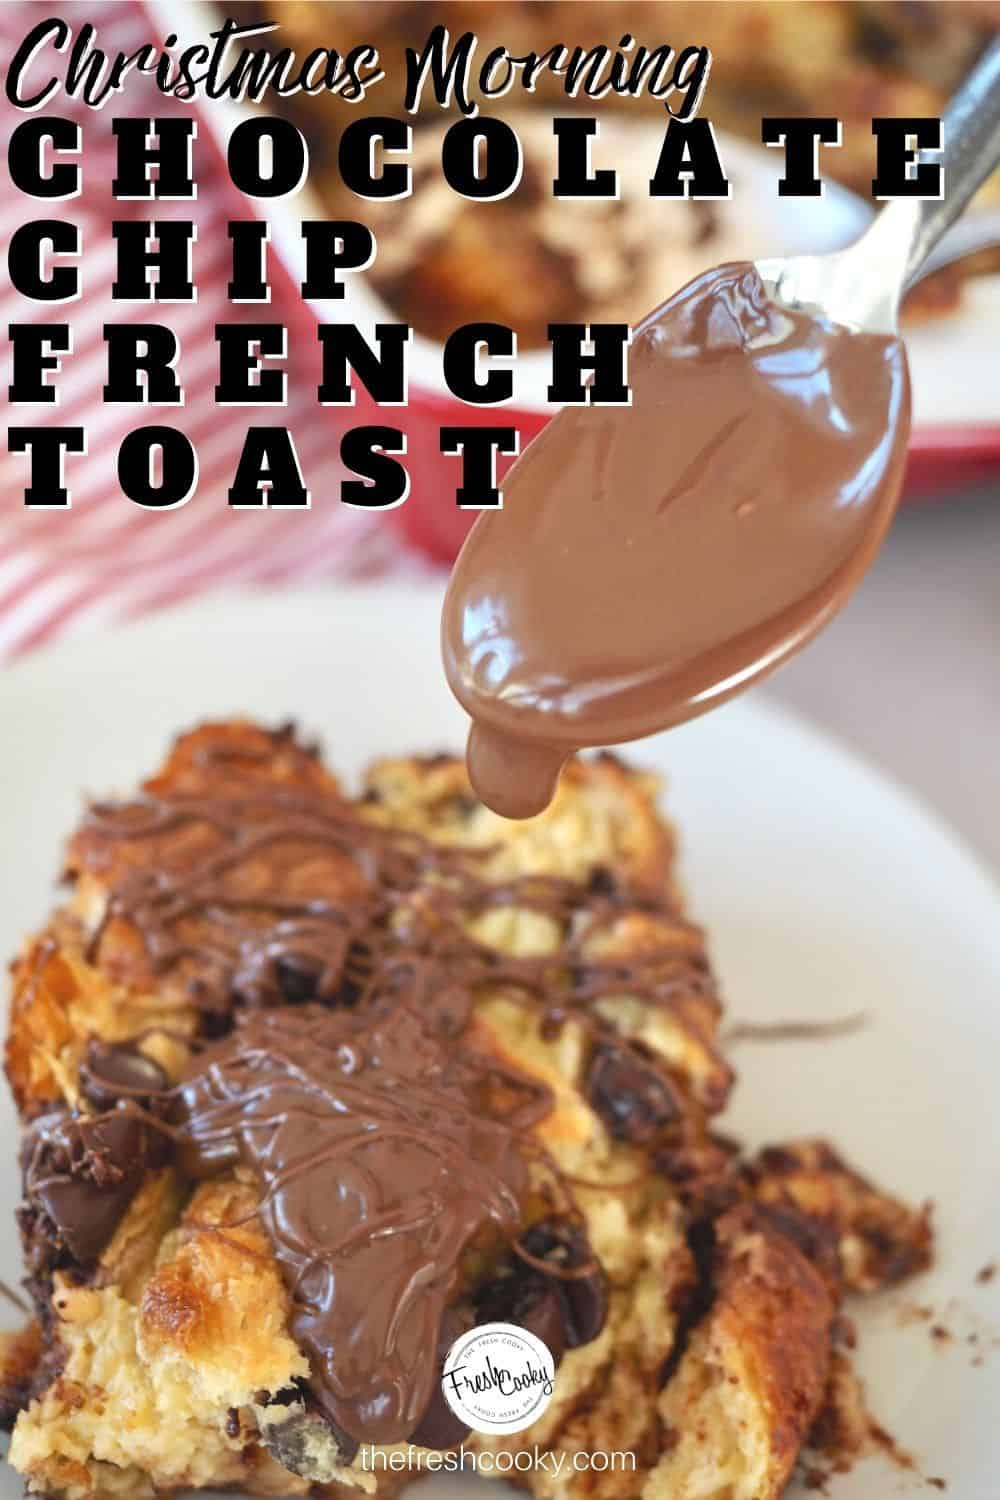 This is your Christmas morning breakfast! Assemble the night before, or even freeze until ready to bake, bake in the morning and you have an amazing holiday breakfast! Chocolate Chip Croissant French Toast Bake is the best! Recipe and easy instructions on The Fresh Cooky. #thefreshcooky #frenchtoastcasserole #christmasbreakfast #valentinesbreakfast via @thefreshcooky